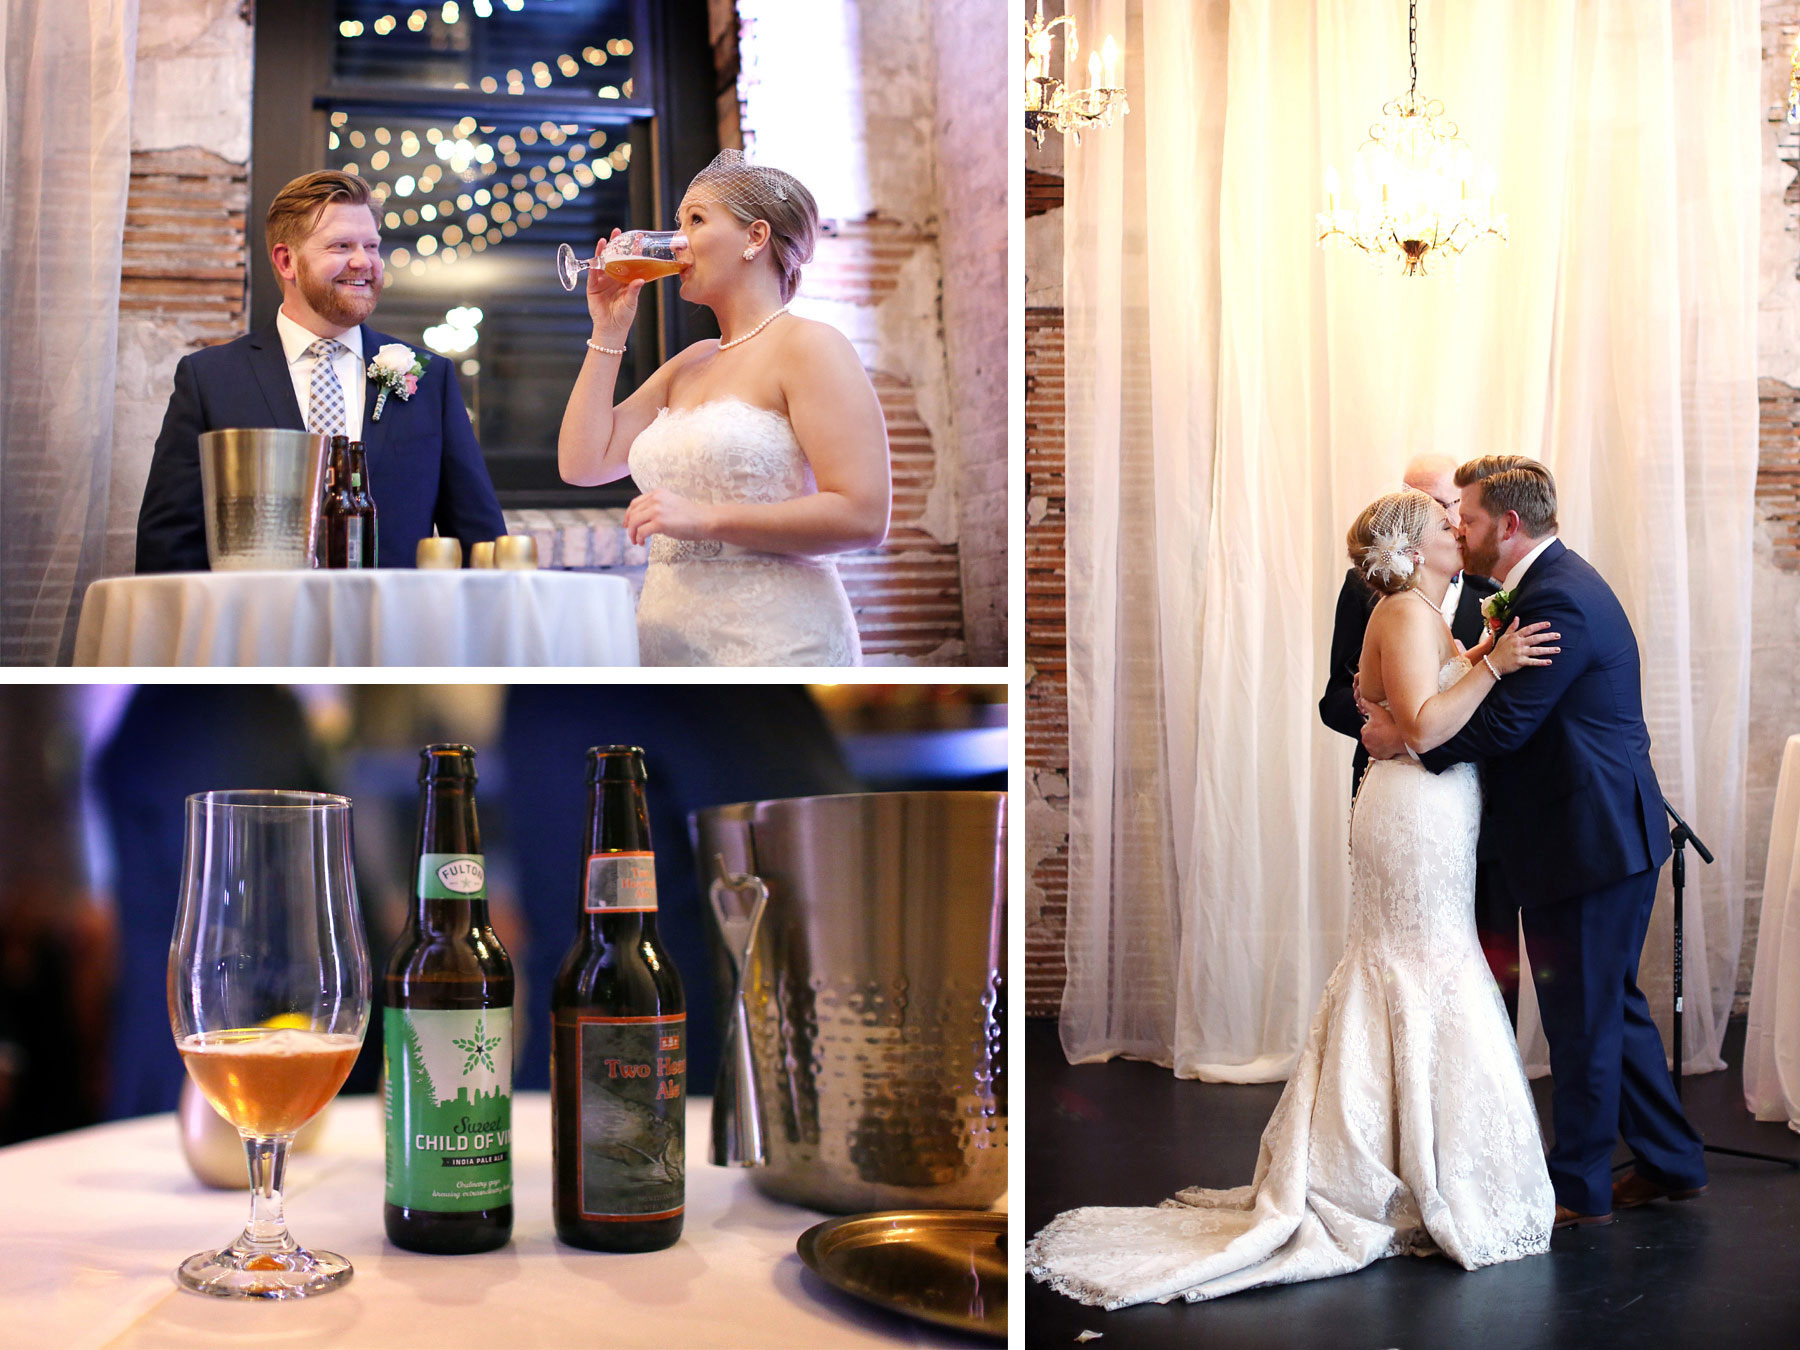 13-Minneapolis-Minnesota-Wedding-Photography-Aria-Ceremony-Beer-Micro-Brewery-Downtown-Industrial-Heidi-and-Peter.jpg